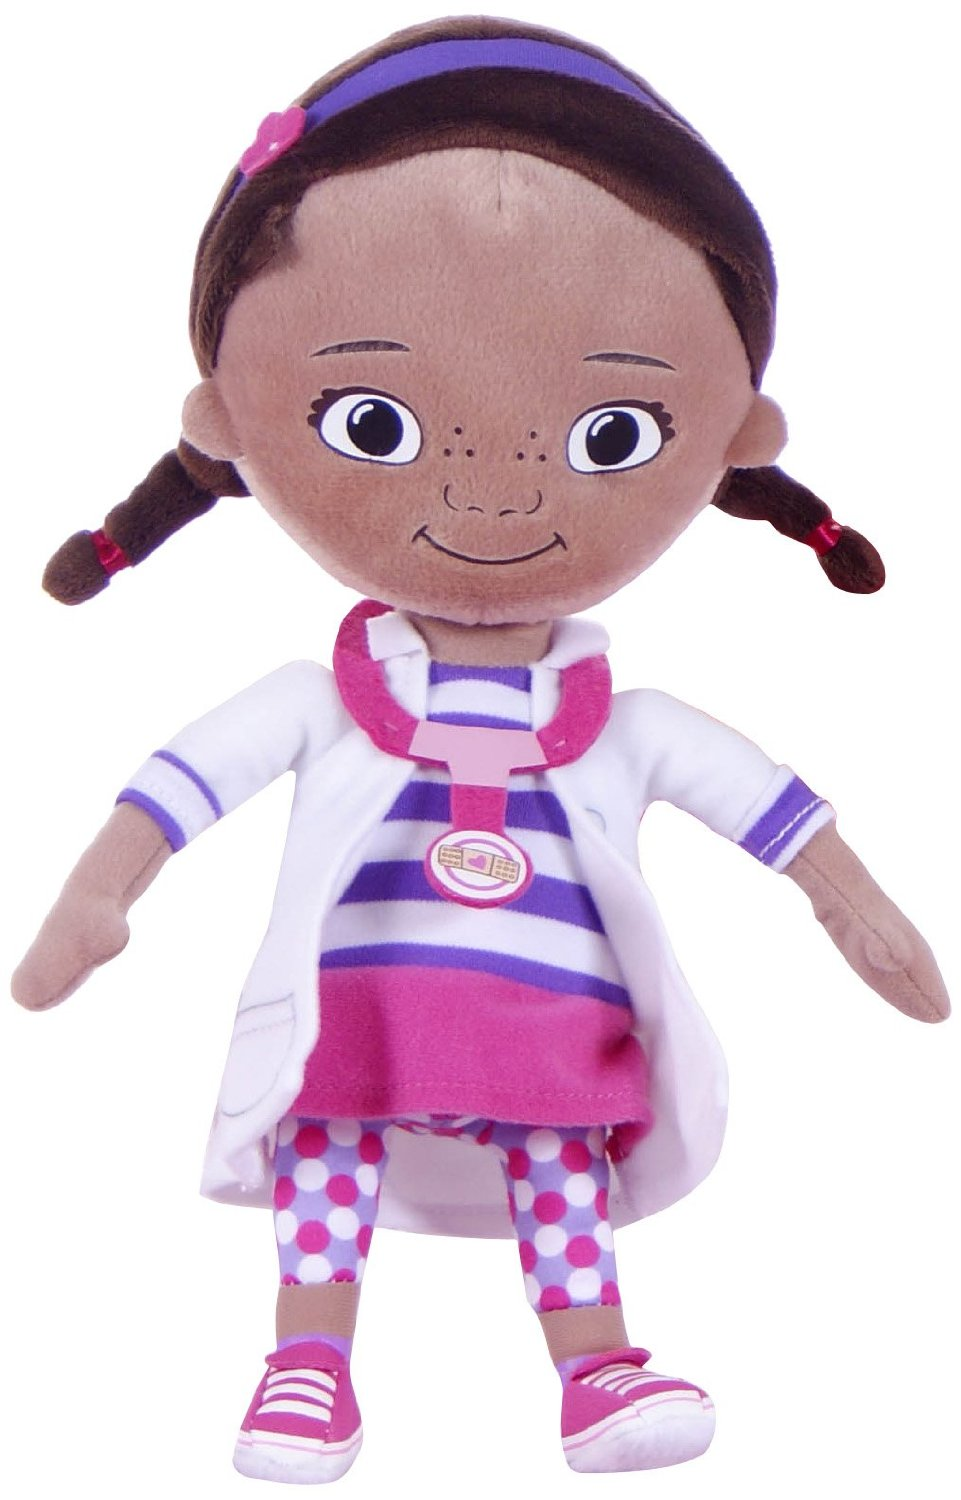 doc mcstuffins Find an amazing variety of doc mcstuffins toys, games, play sets, dress up kits, and more at toysrus we have many high quality doc mcstuffins items to choose from.